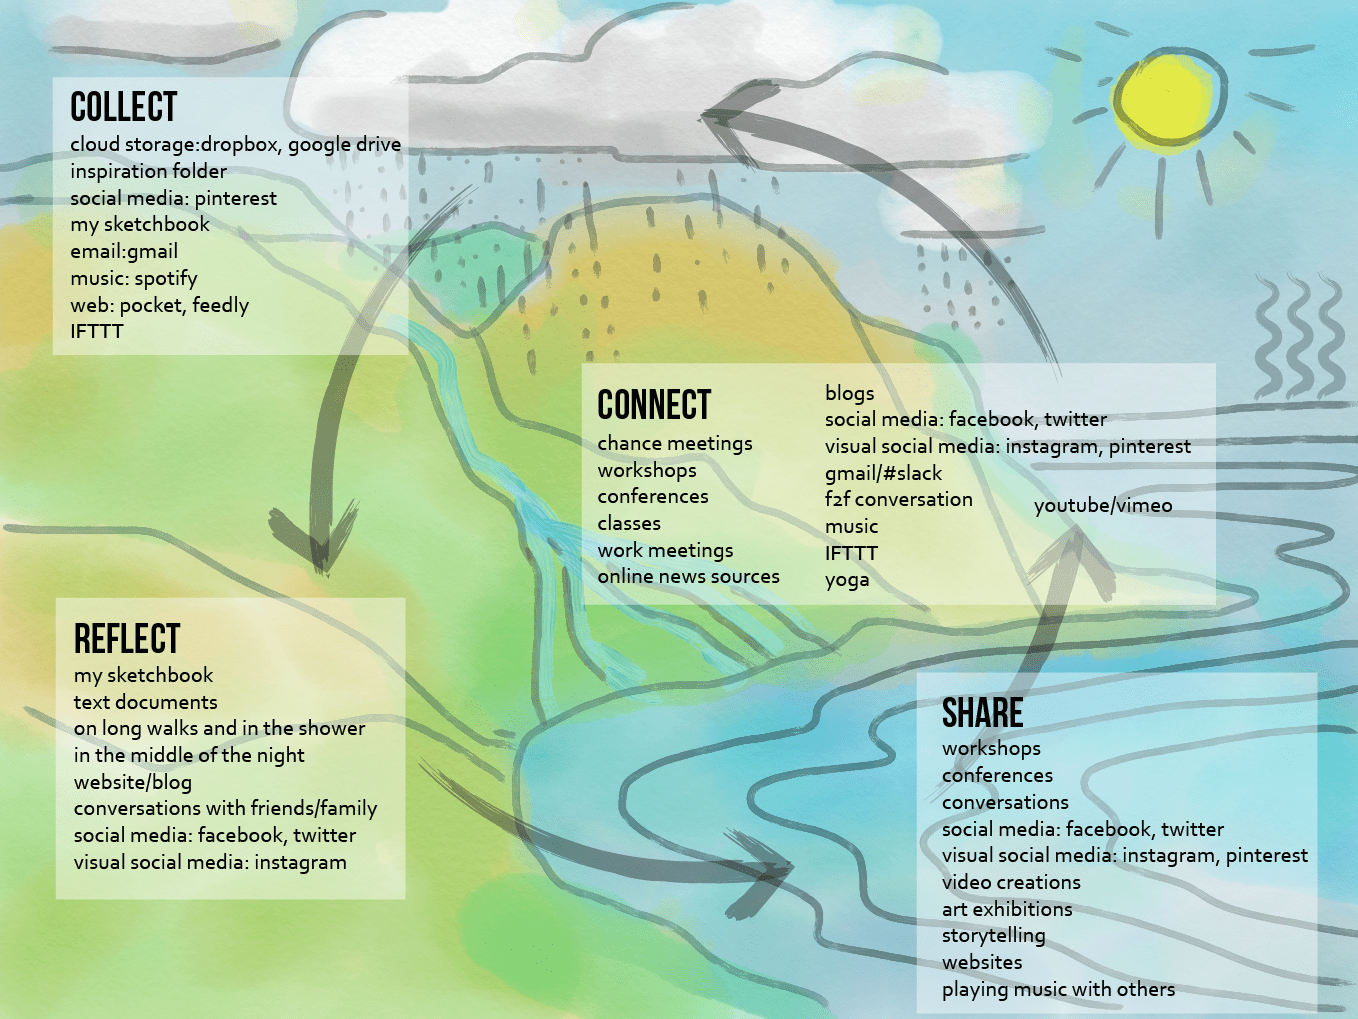 background picture done in water colors, looks like the hydrological cycle with land, rivers, ocean, evaporation. Text boxes contain lists of PLE elements in the foreground.